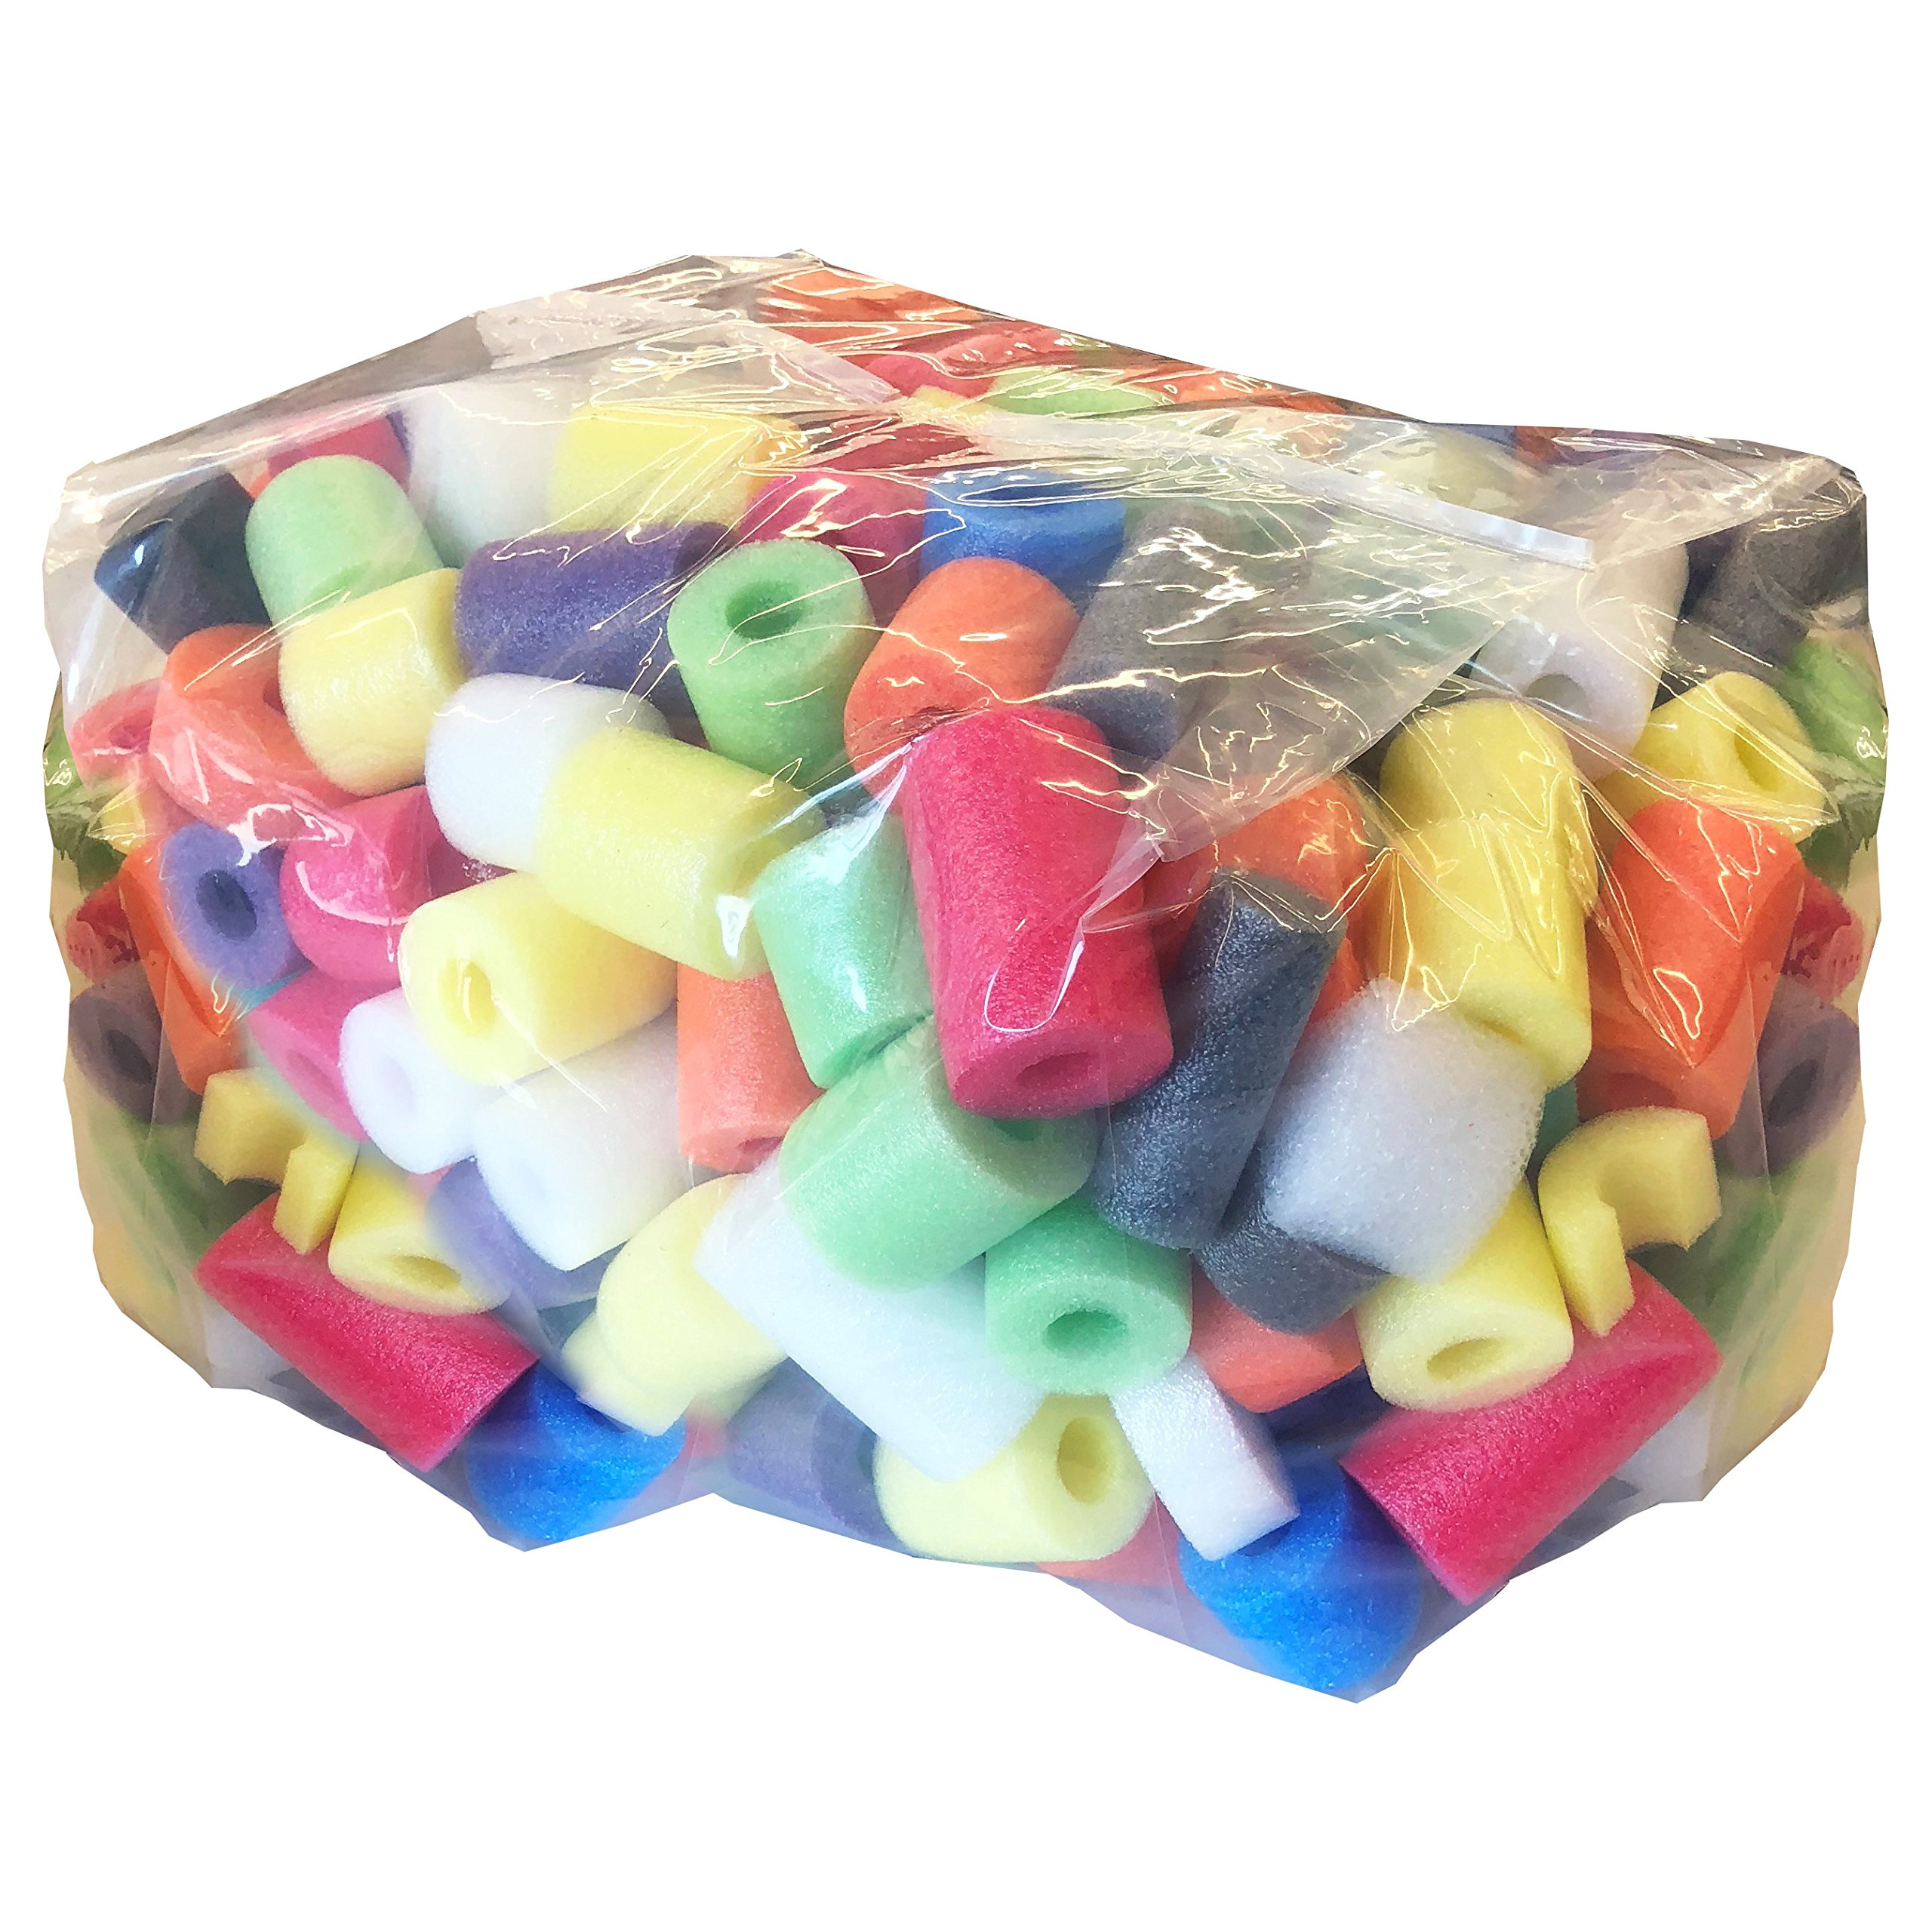 Oodles of Noodles Deluxe Foam Noodle & Foam Bits - Great for Crafts or Play - Large Bag by Oodles of Noodles